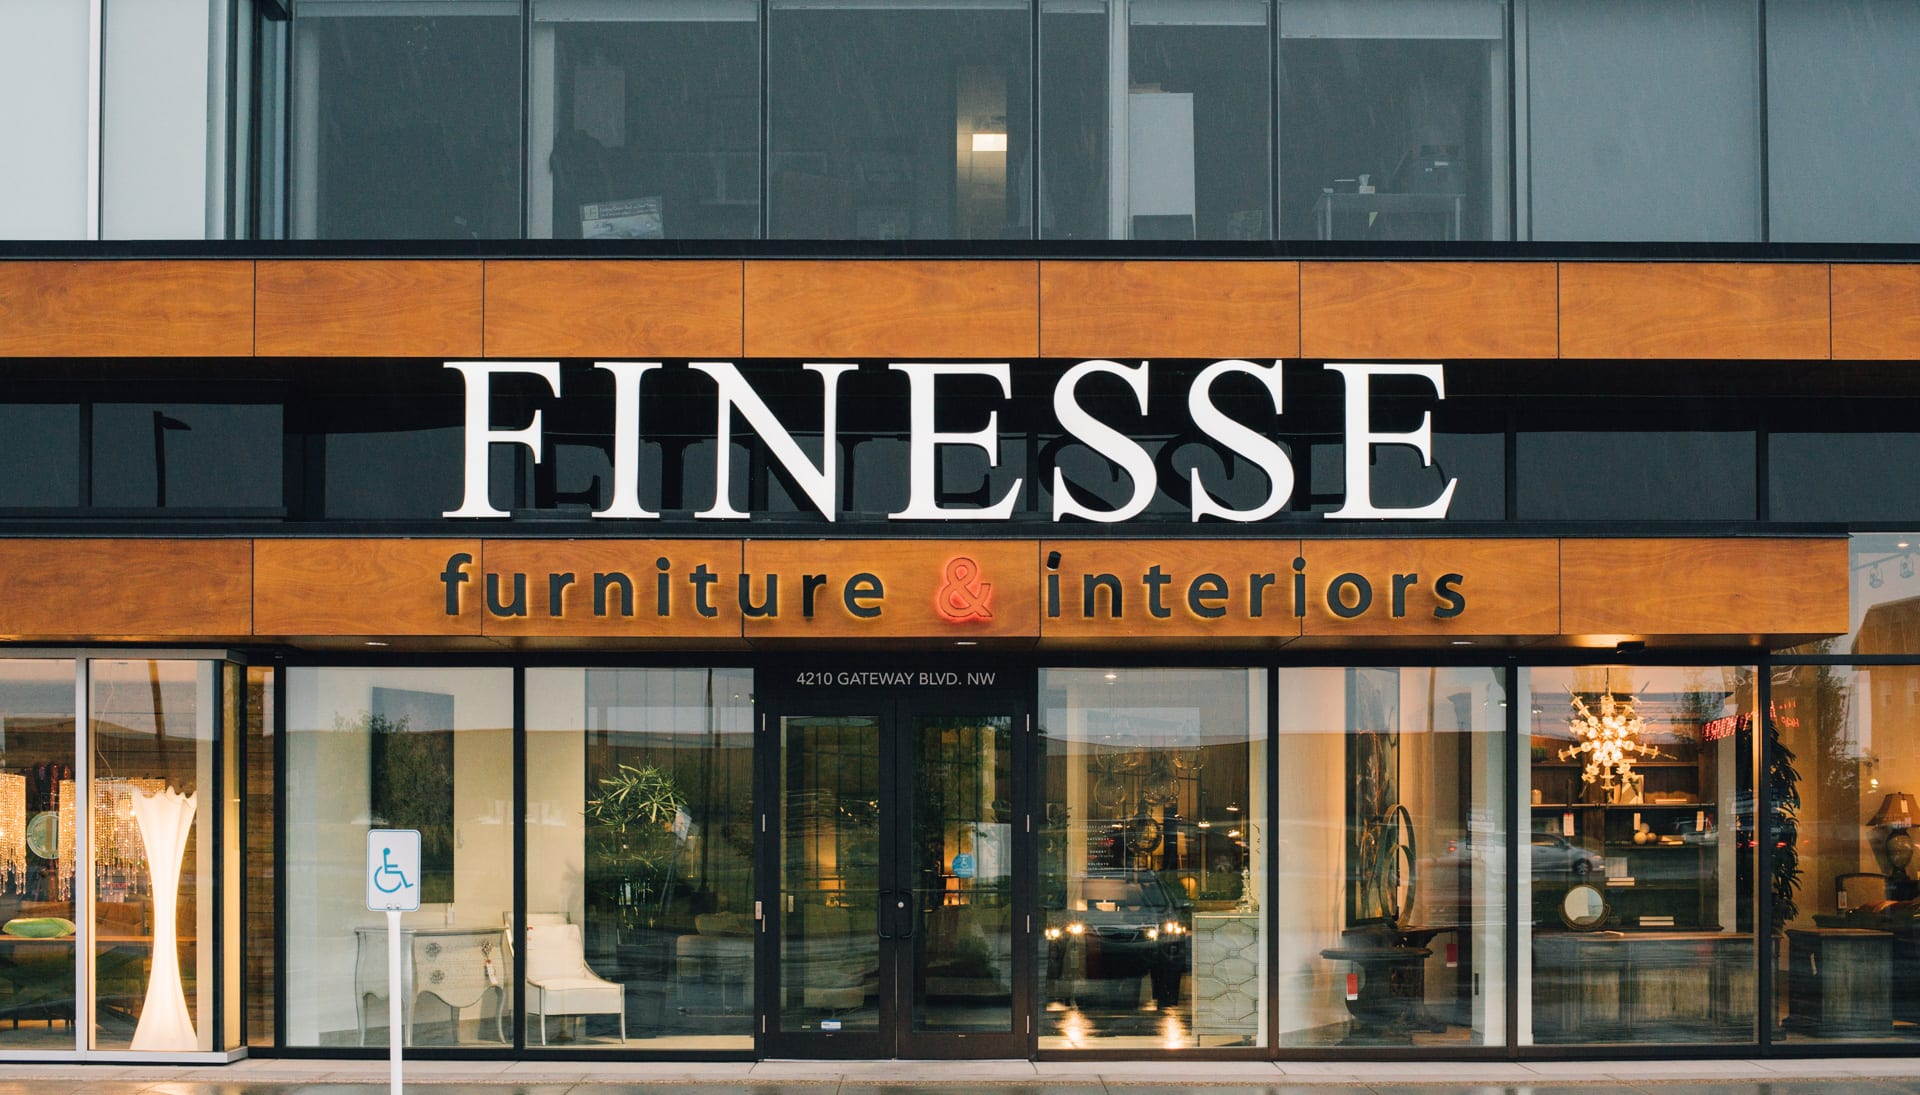 Wood paneling on the front of Finesse Furniture & interiors.